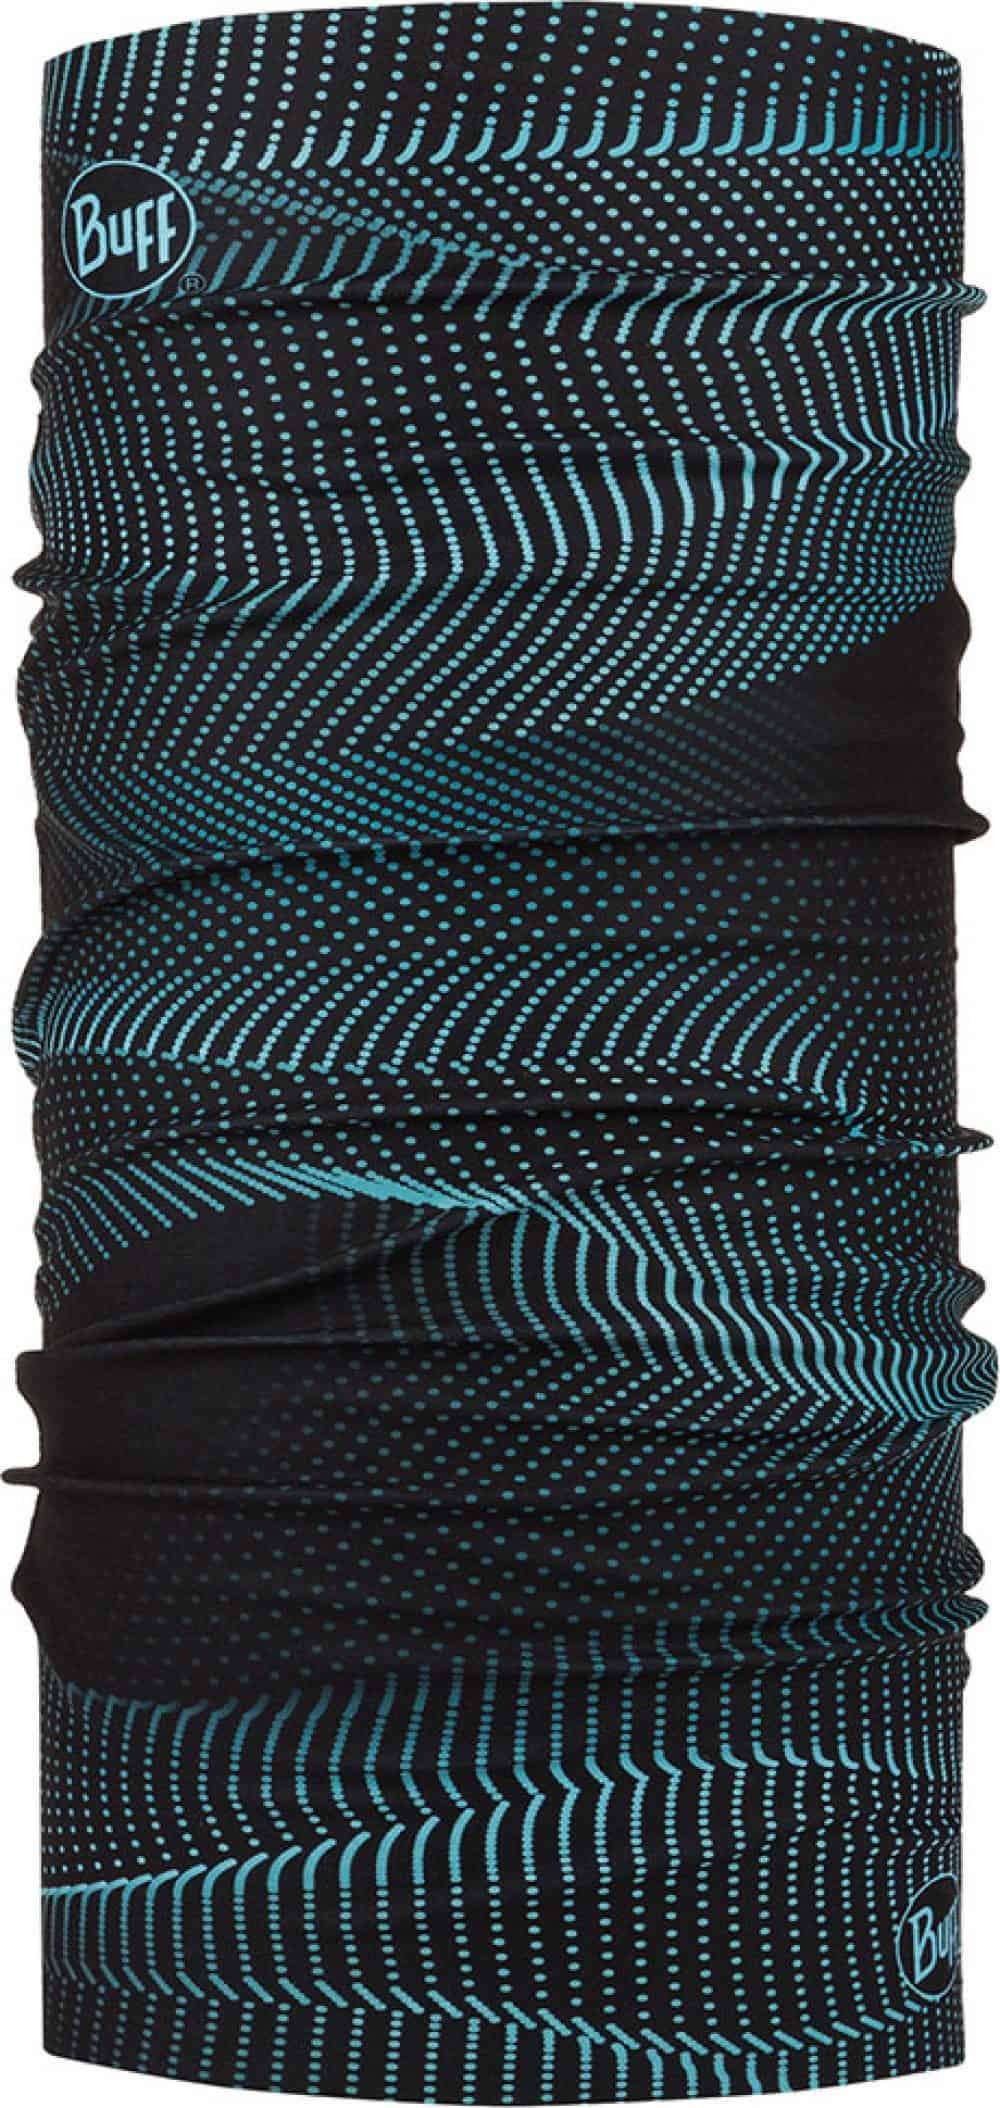 "Studio photo of the Original Buff® Design ""Glow Waves Black"". Source: buff.eu"